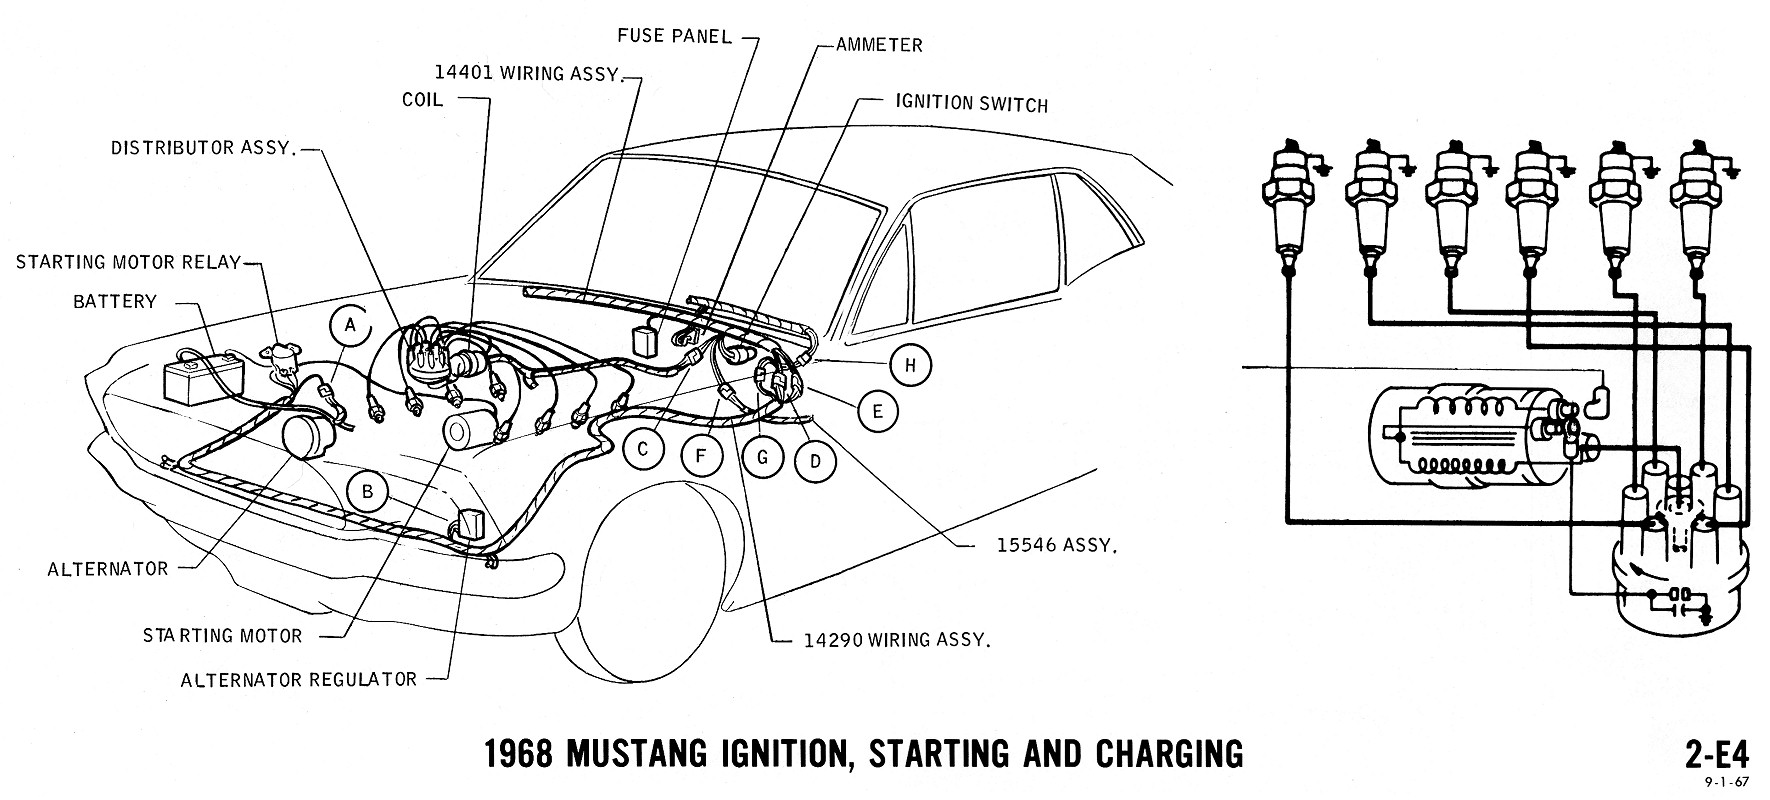 1968 mustang wiring diagram ignition starting charging 2 1968 mustang wiring diagrams and vacuum schematics average joe 1967 mustang ignition wiring diagram at gsmx.co